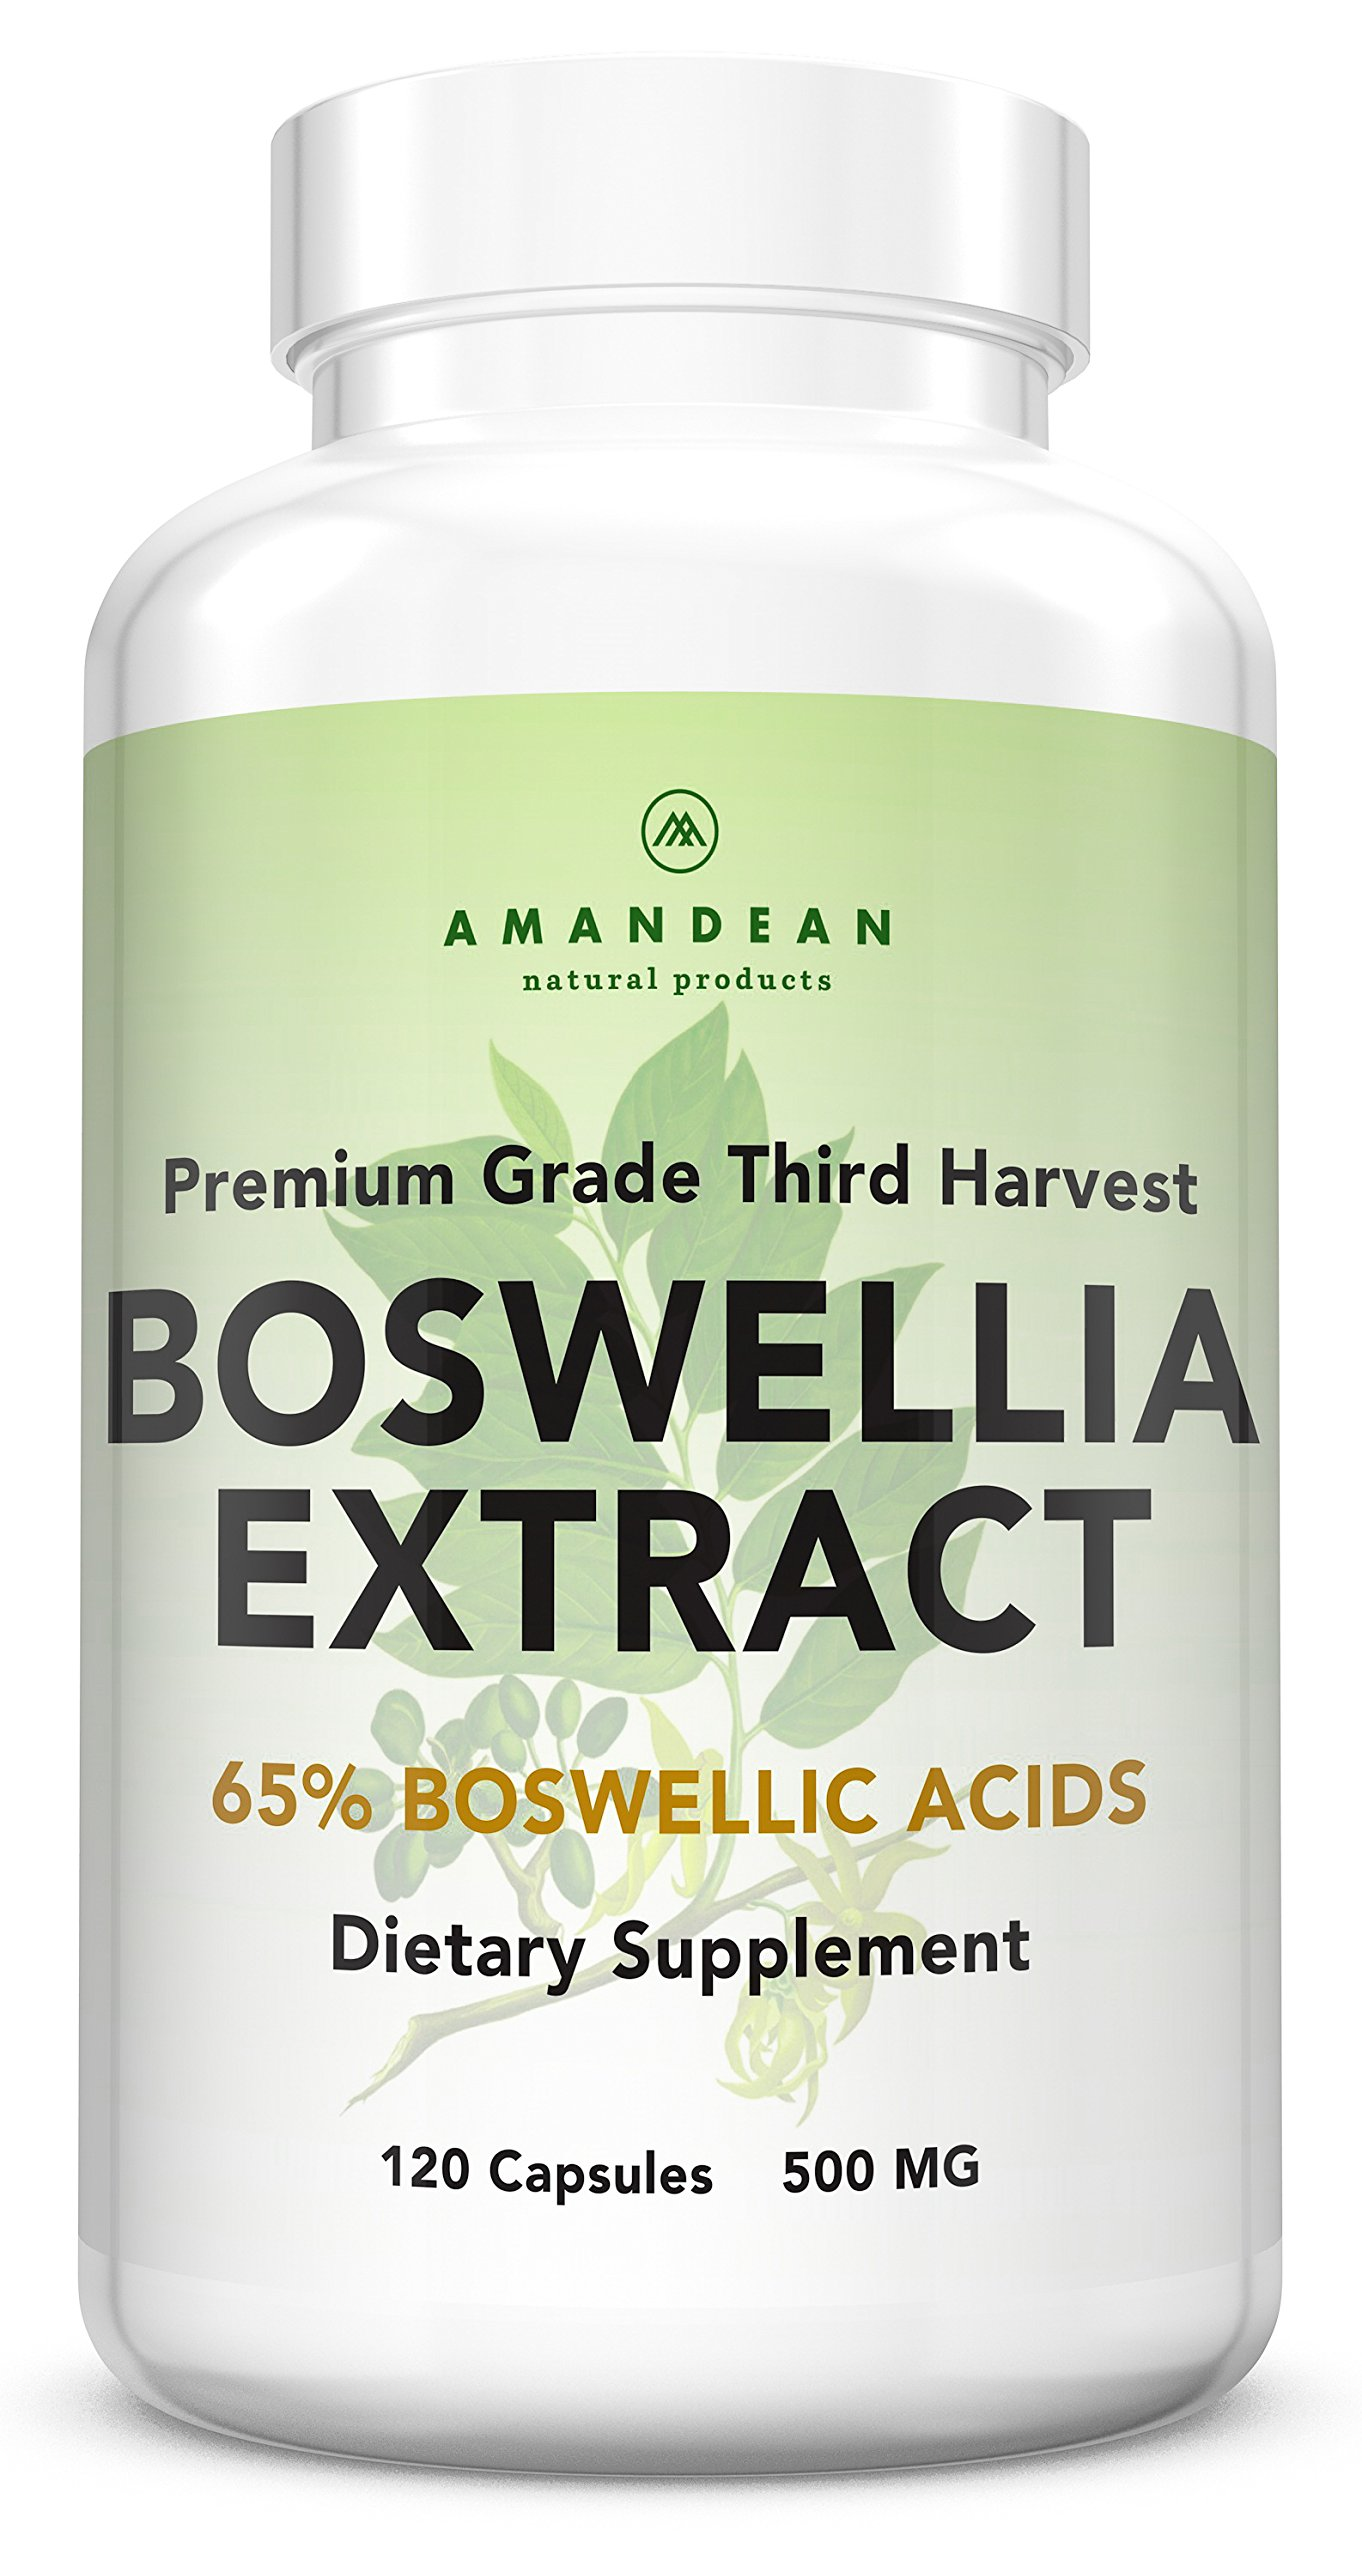 Premium Boswellia Serrata Extract   500mg 120 Veggie Capsules   Standardized 65% Boswellic Acids with AKBA   Natural Ayurvedic Supplement (Indian Frankincense) for Inflammation and Joint Pain Relief*